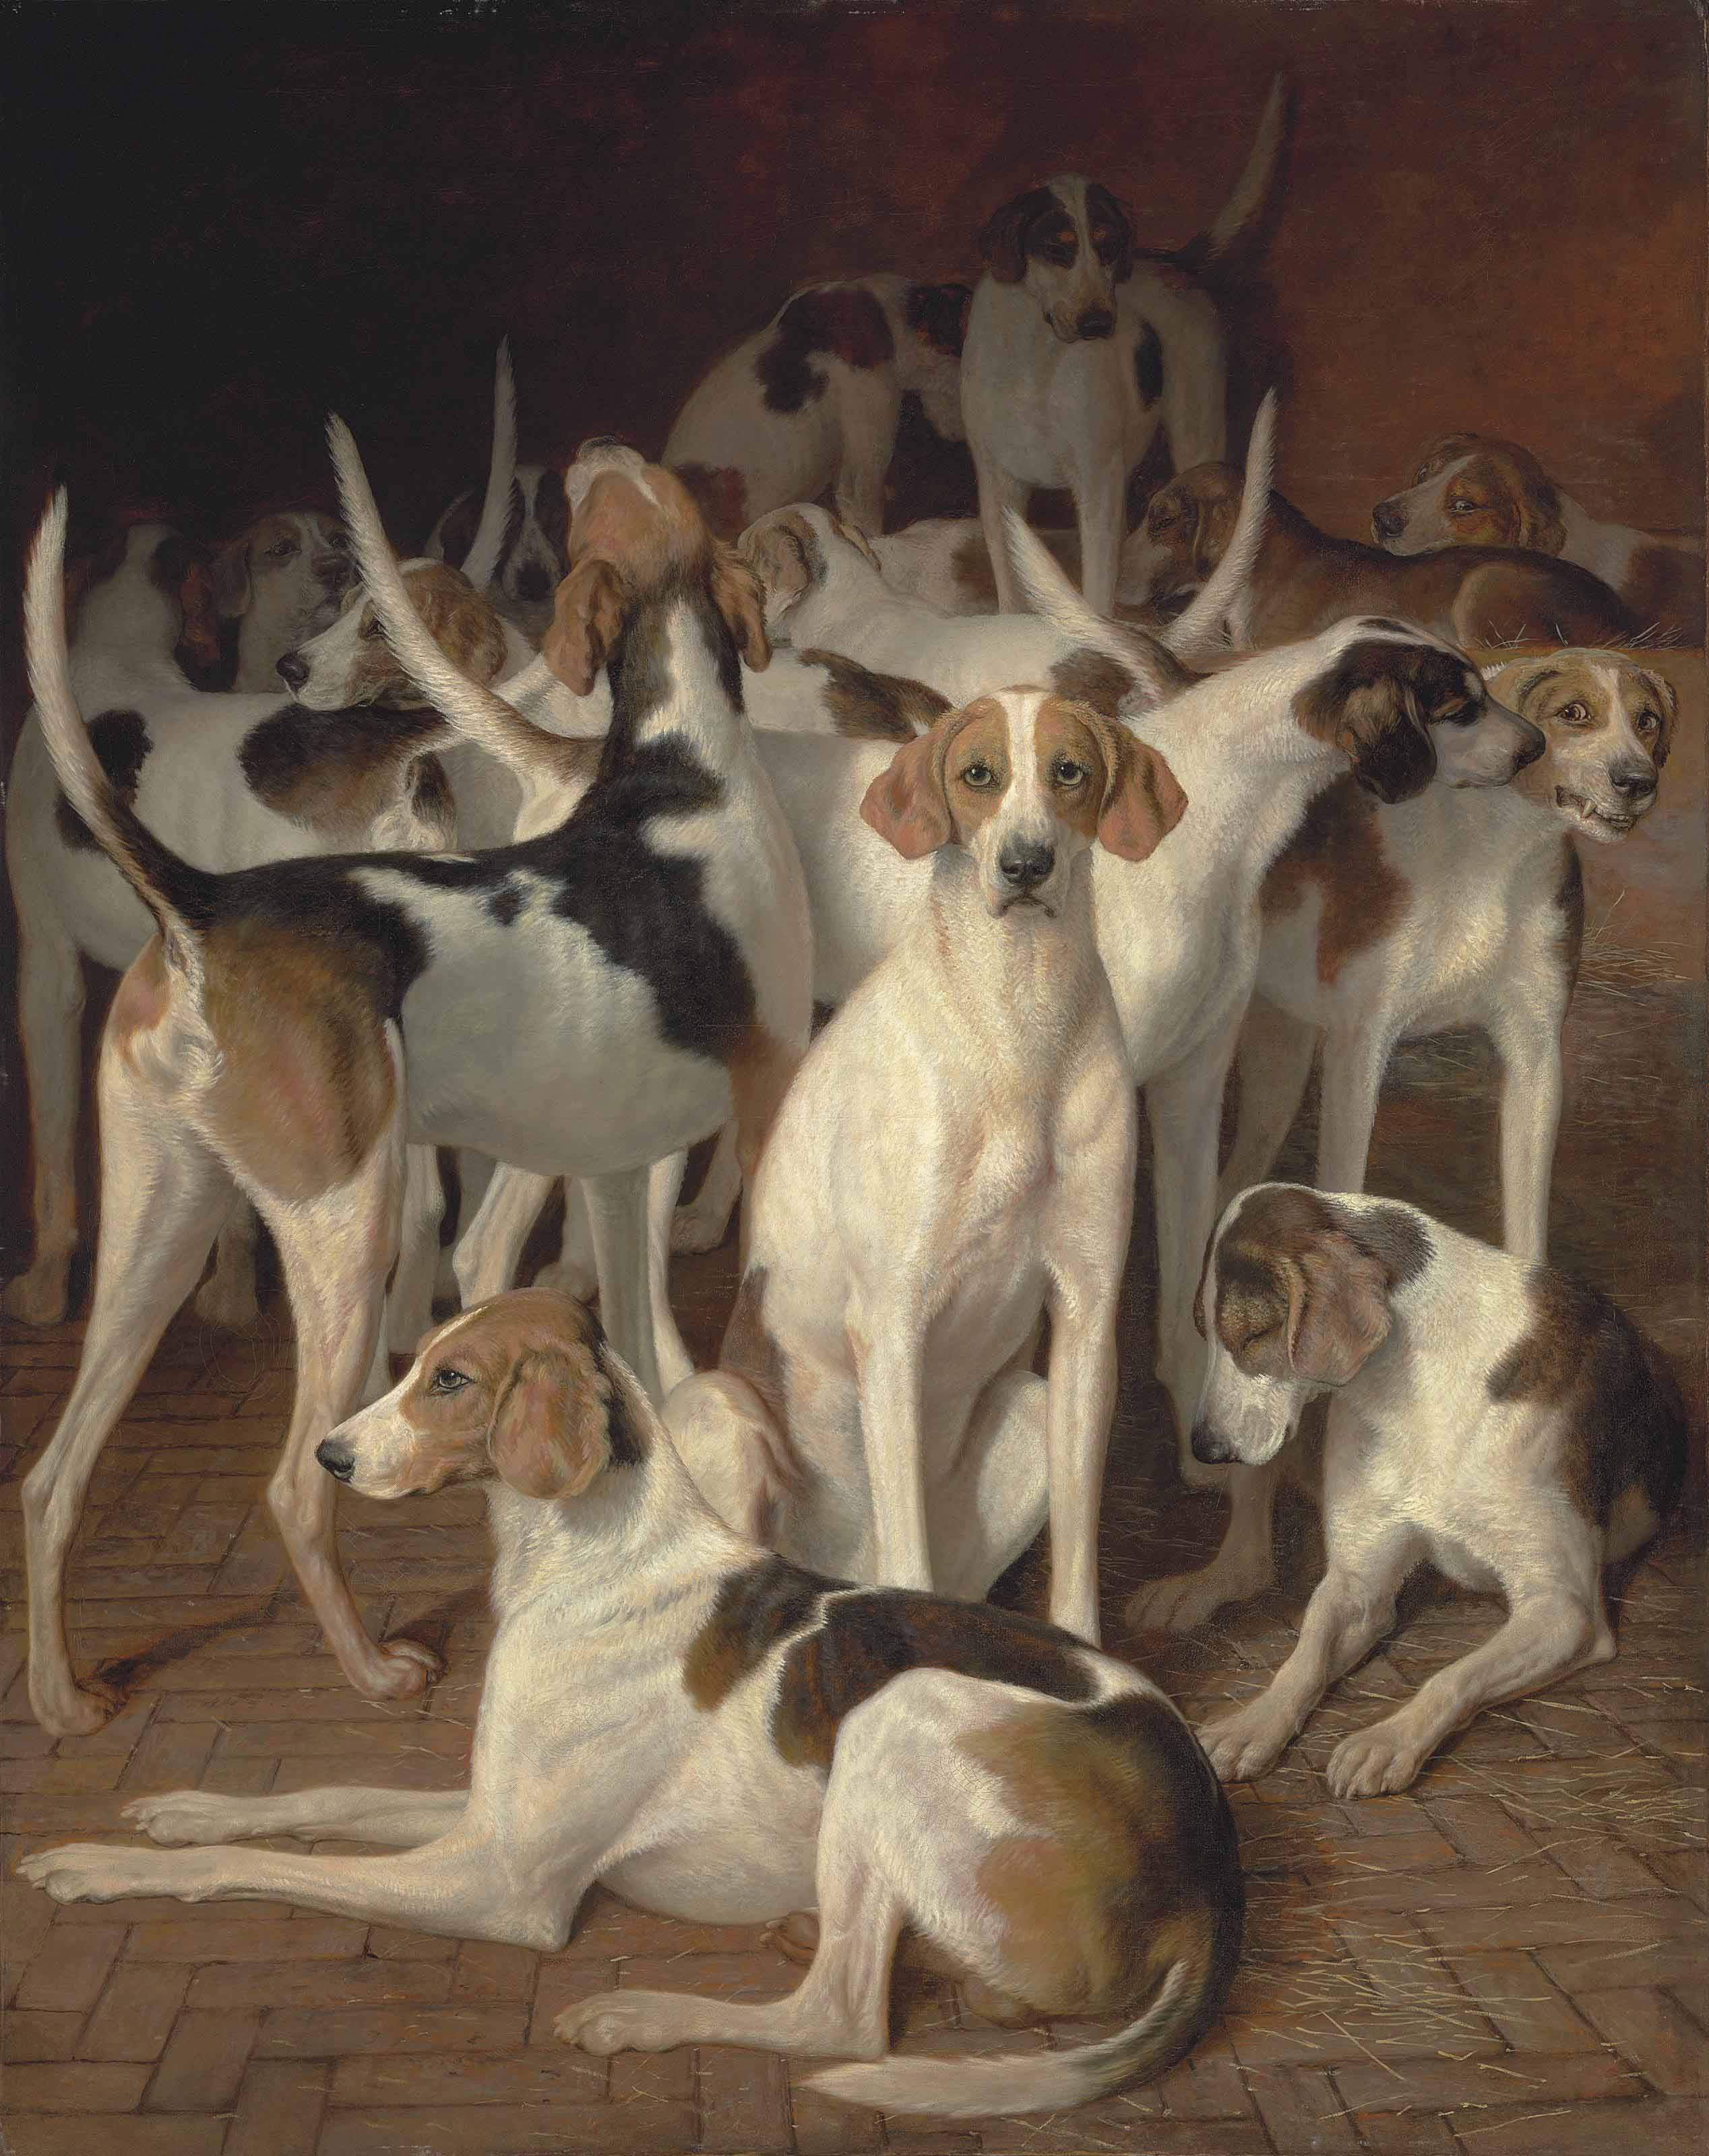 Hounds in a kennel